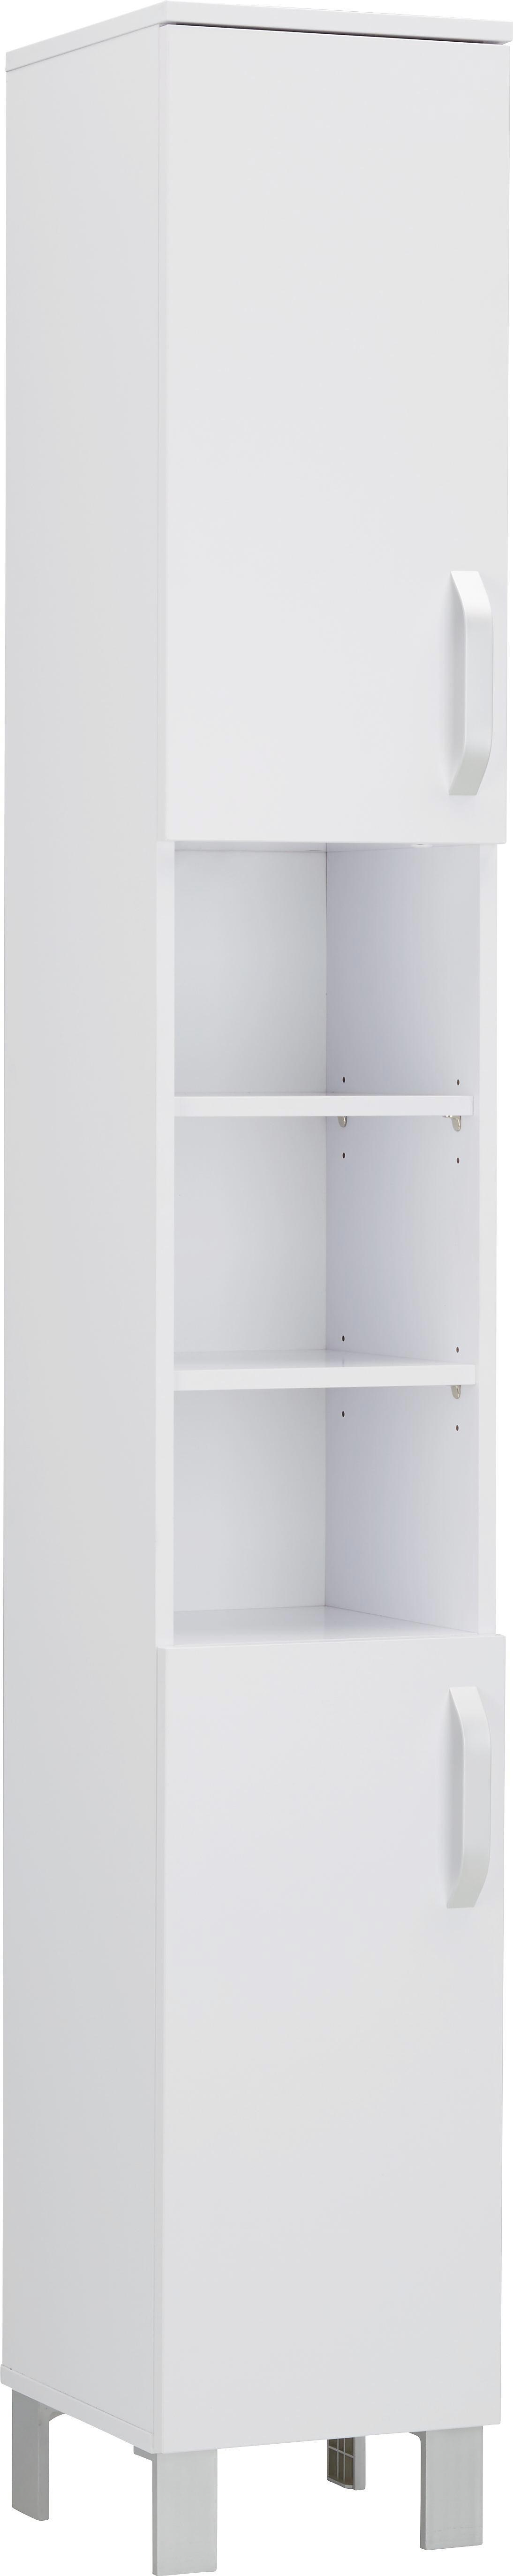 Awesome Best Hochschrank Bad Wei With Hochschrank Bad Wei With Xora Badmbel  With Ikea Badmbel Hochschrank With Hochschrank Kche Poco